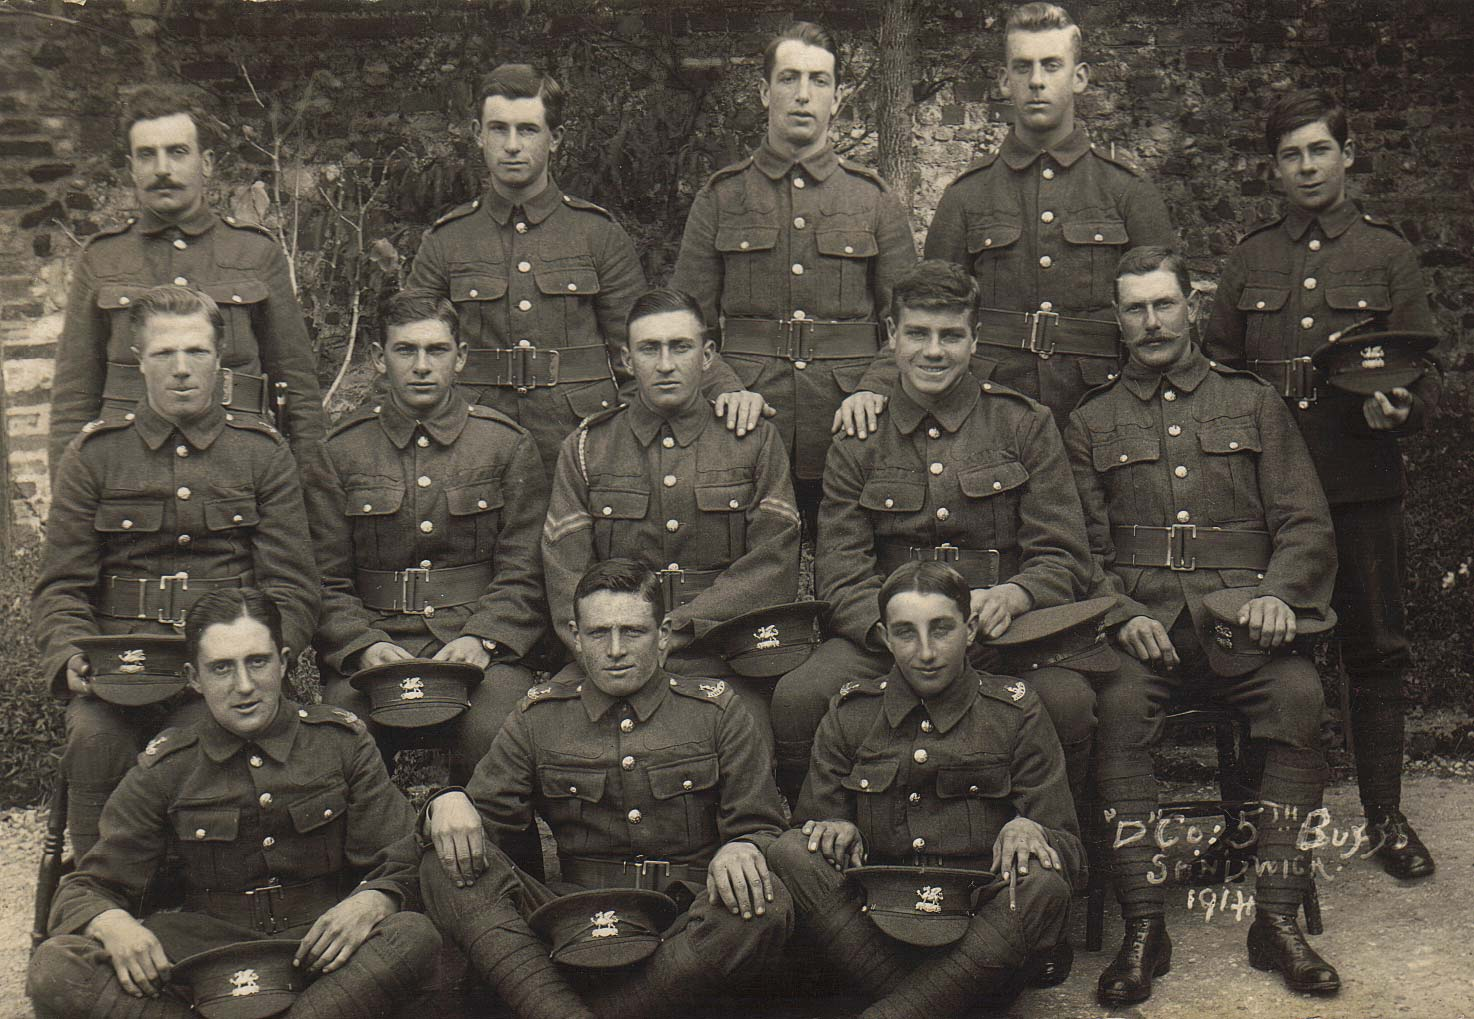 D Company 5th Buffs, Goudhurst, World War One,1914